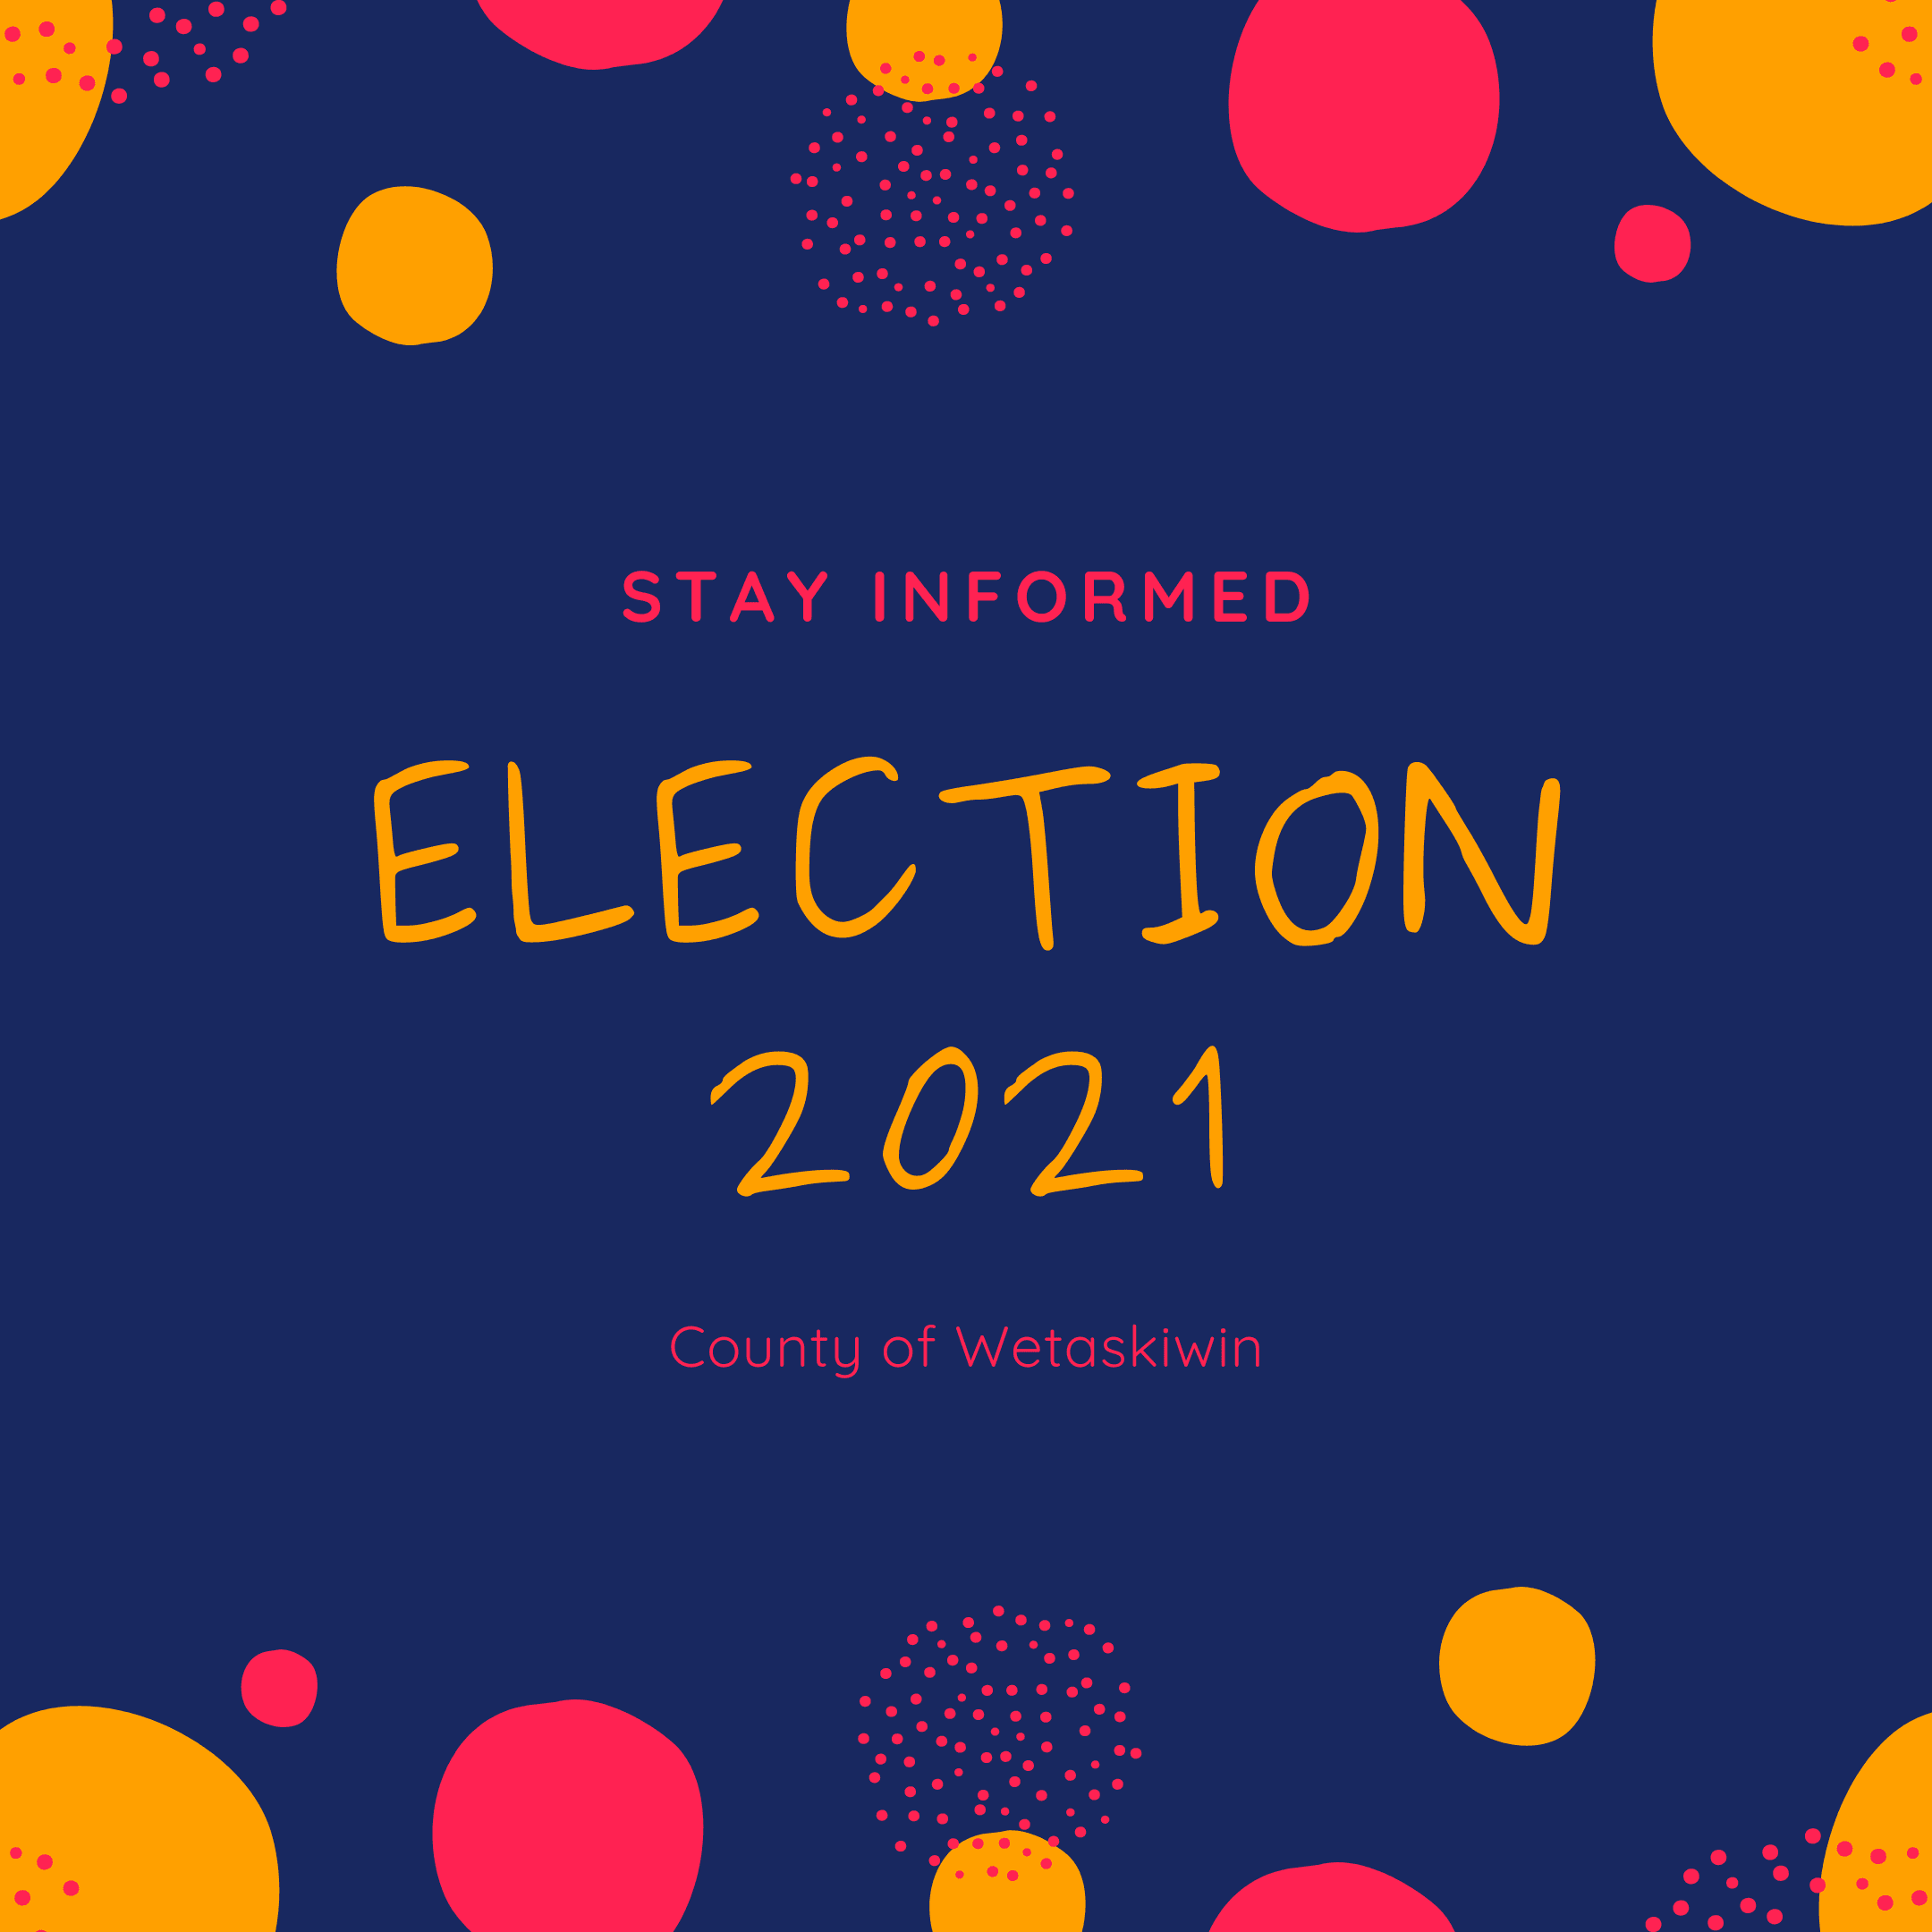 Elections 2021 image